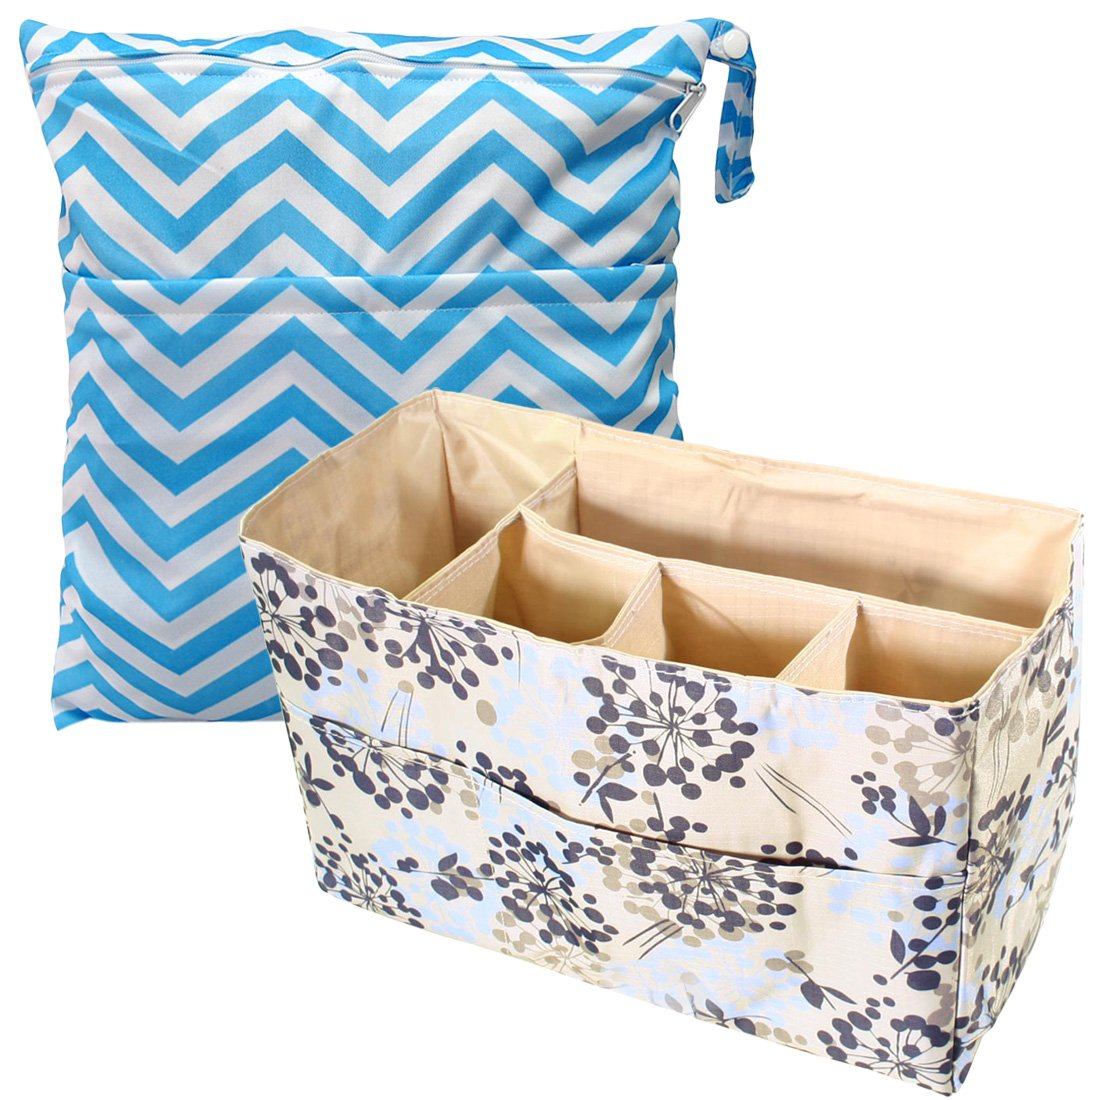 KF Baby Diaper Bag Insert Organizer, Firm Compartments + Wet Dry Bag Value Combo